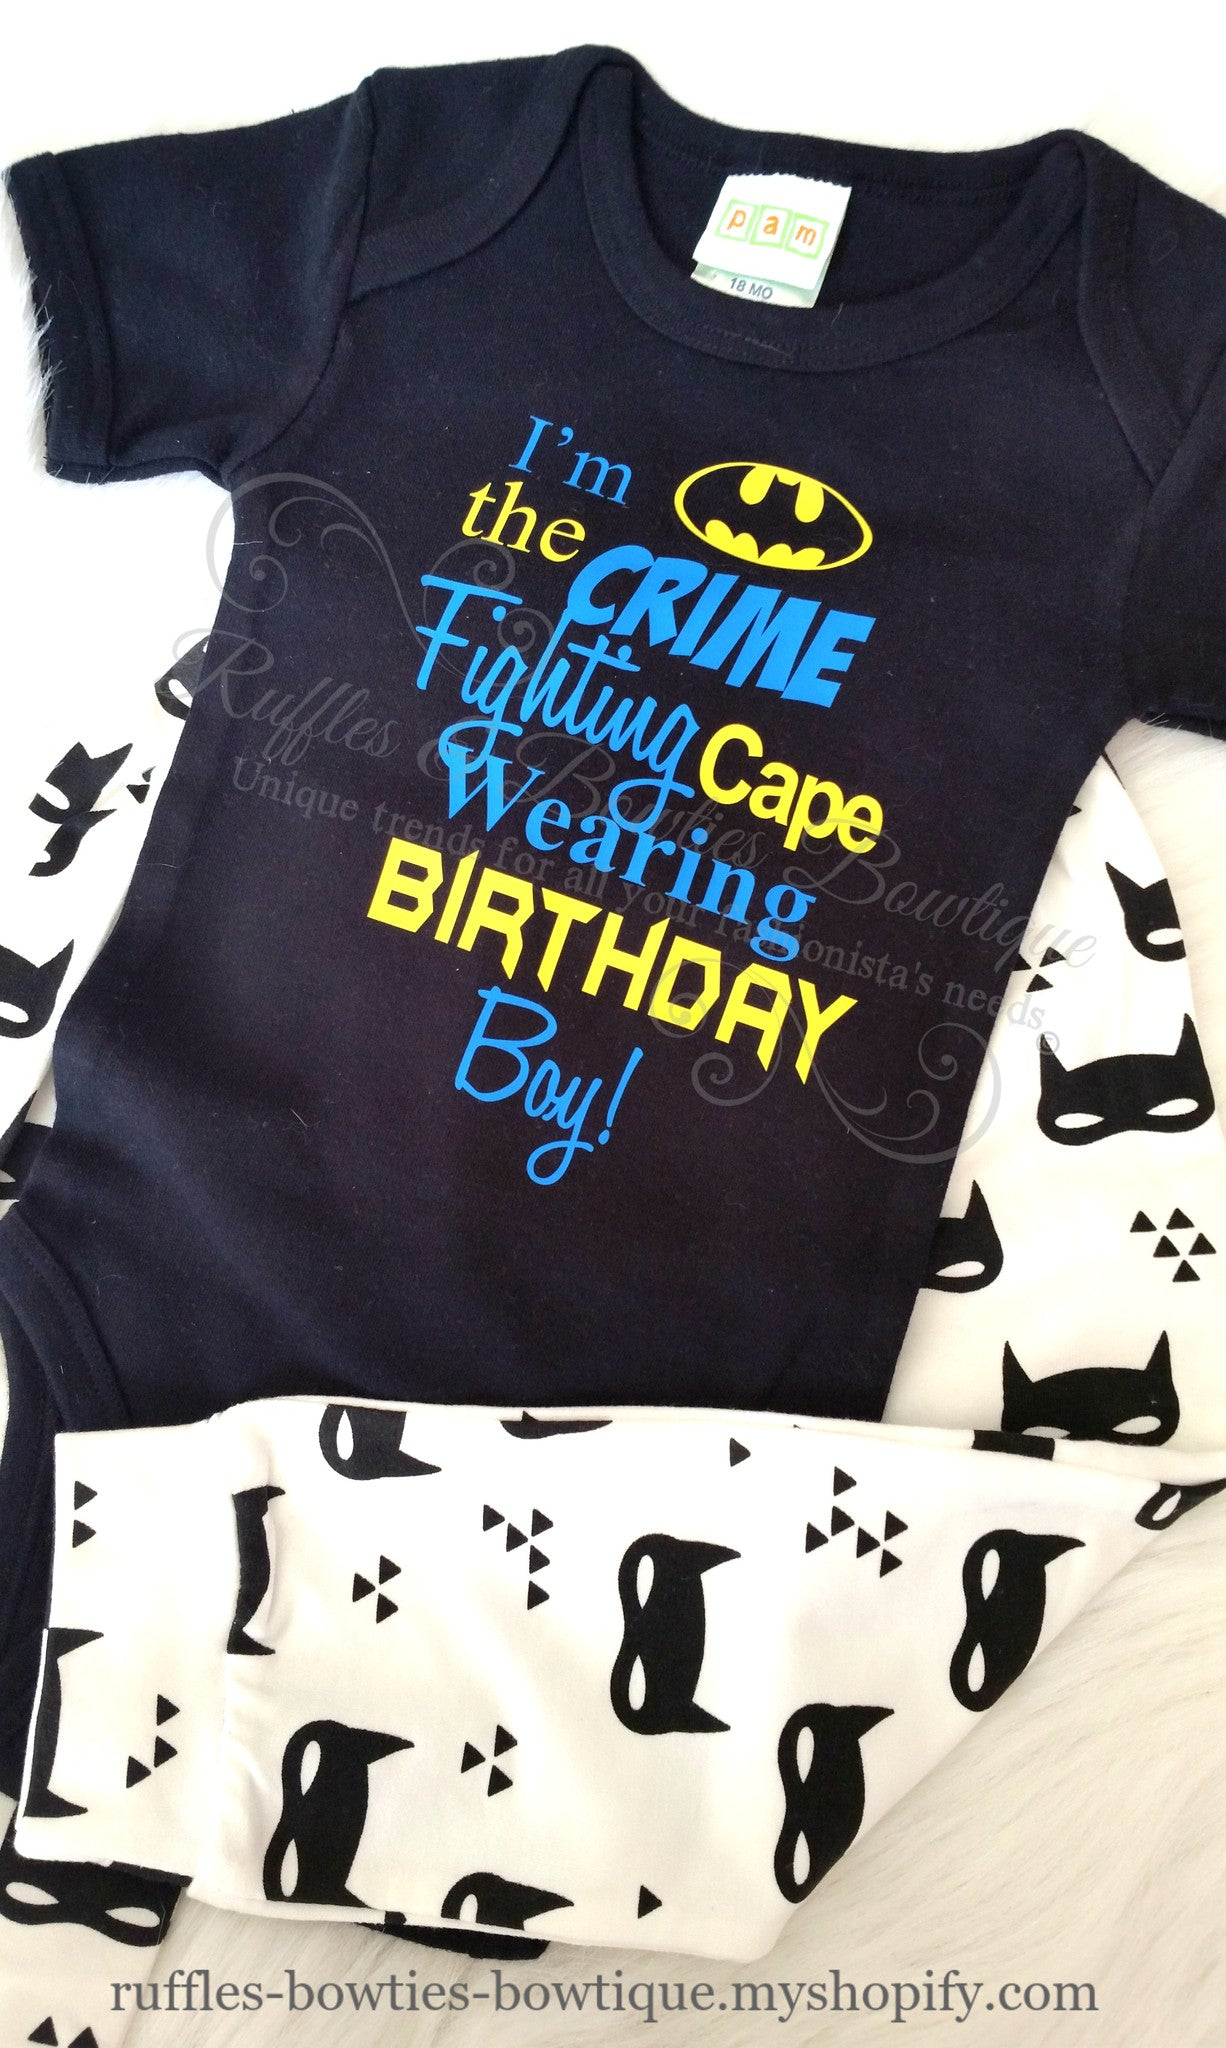 Bat Man Birthday Shirt Im A The Crime Fighting Cape Wearing Ruffles Bowties Bowtique